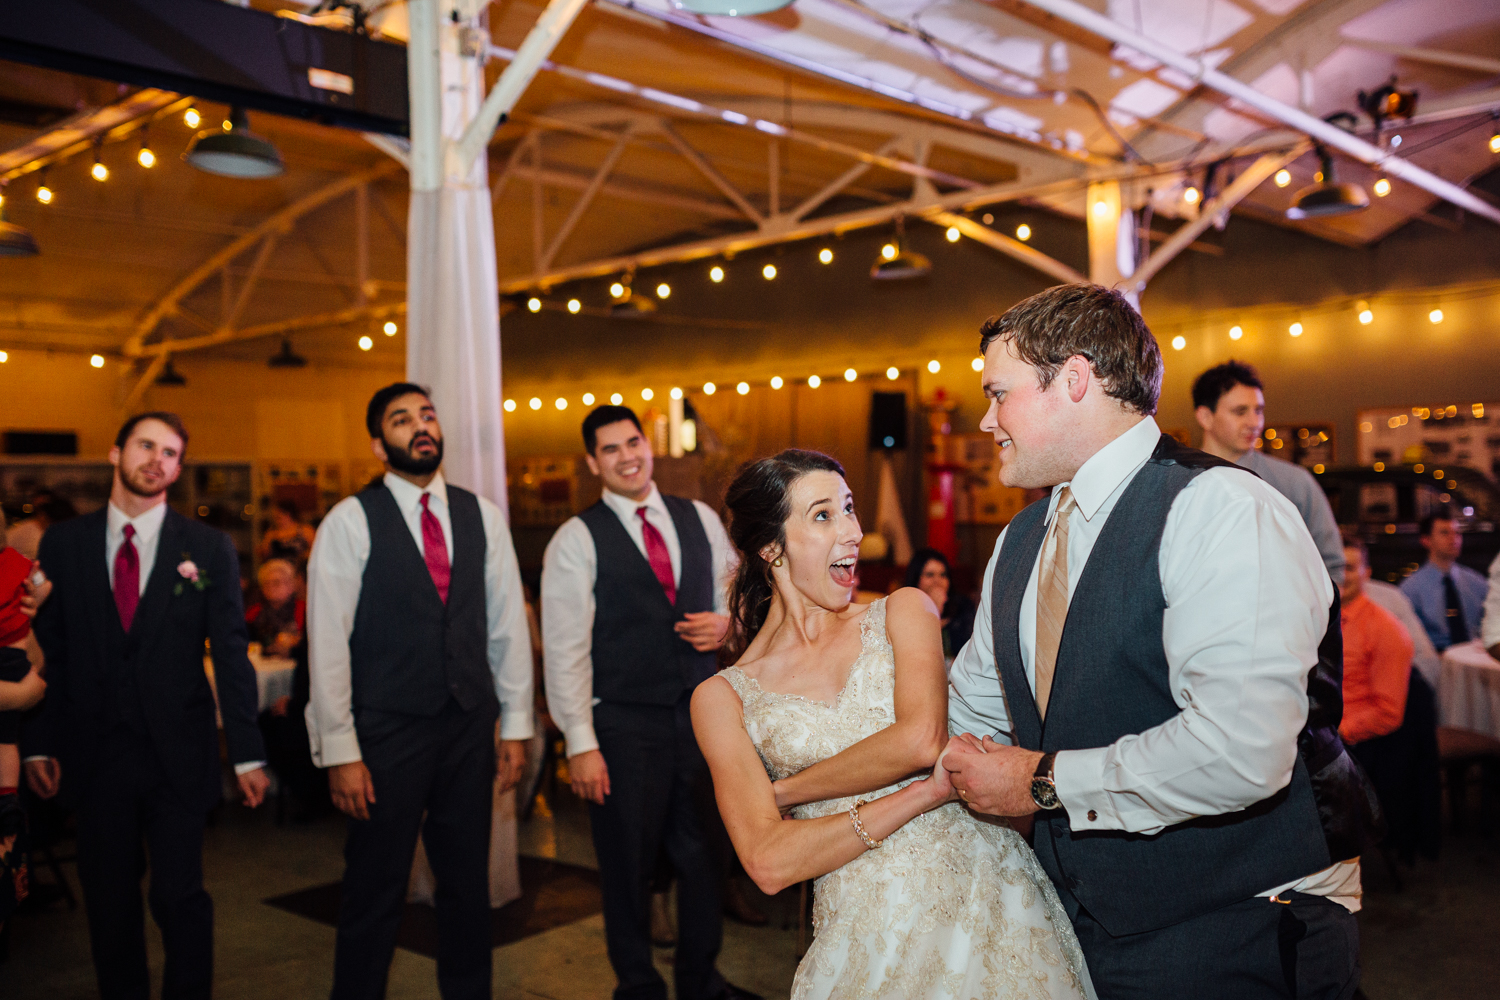 Fun, Intimate Spring Wedding by Corrie Mick Photography-127.jpg